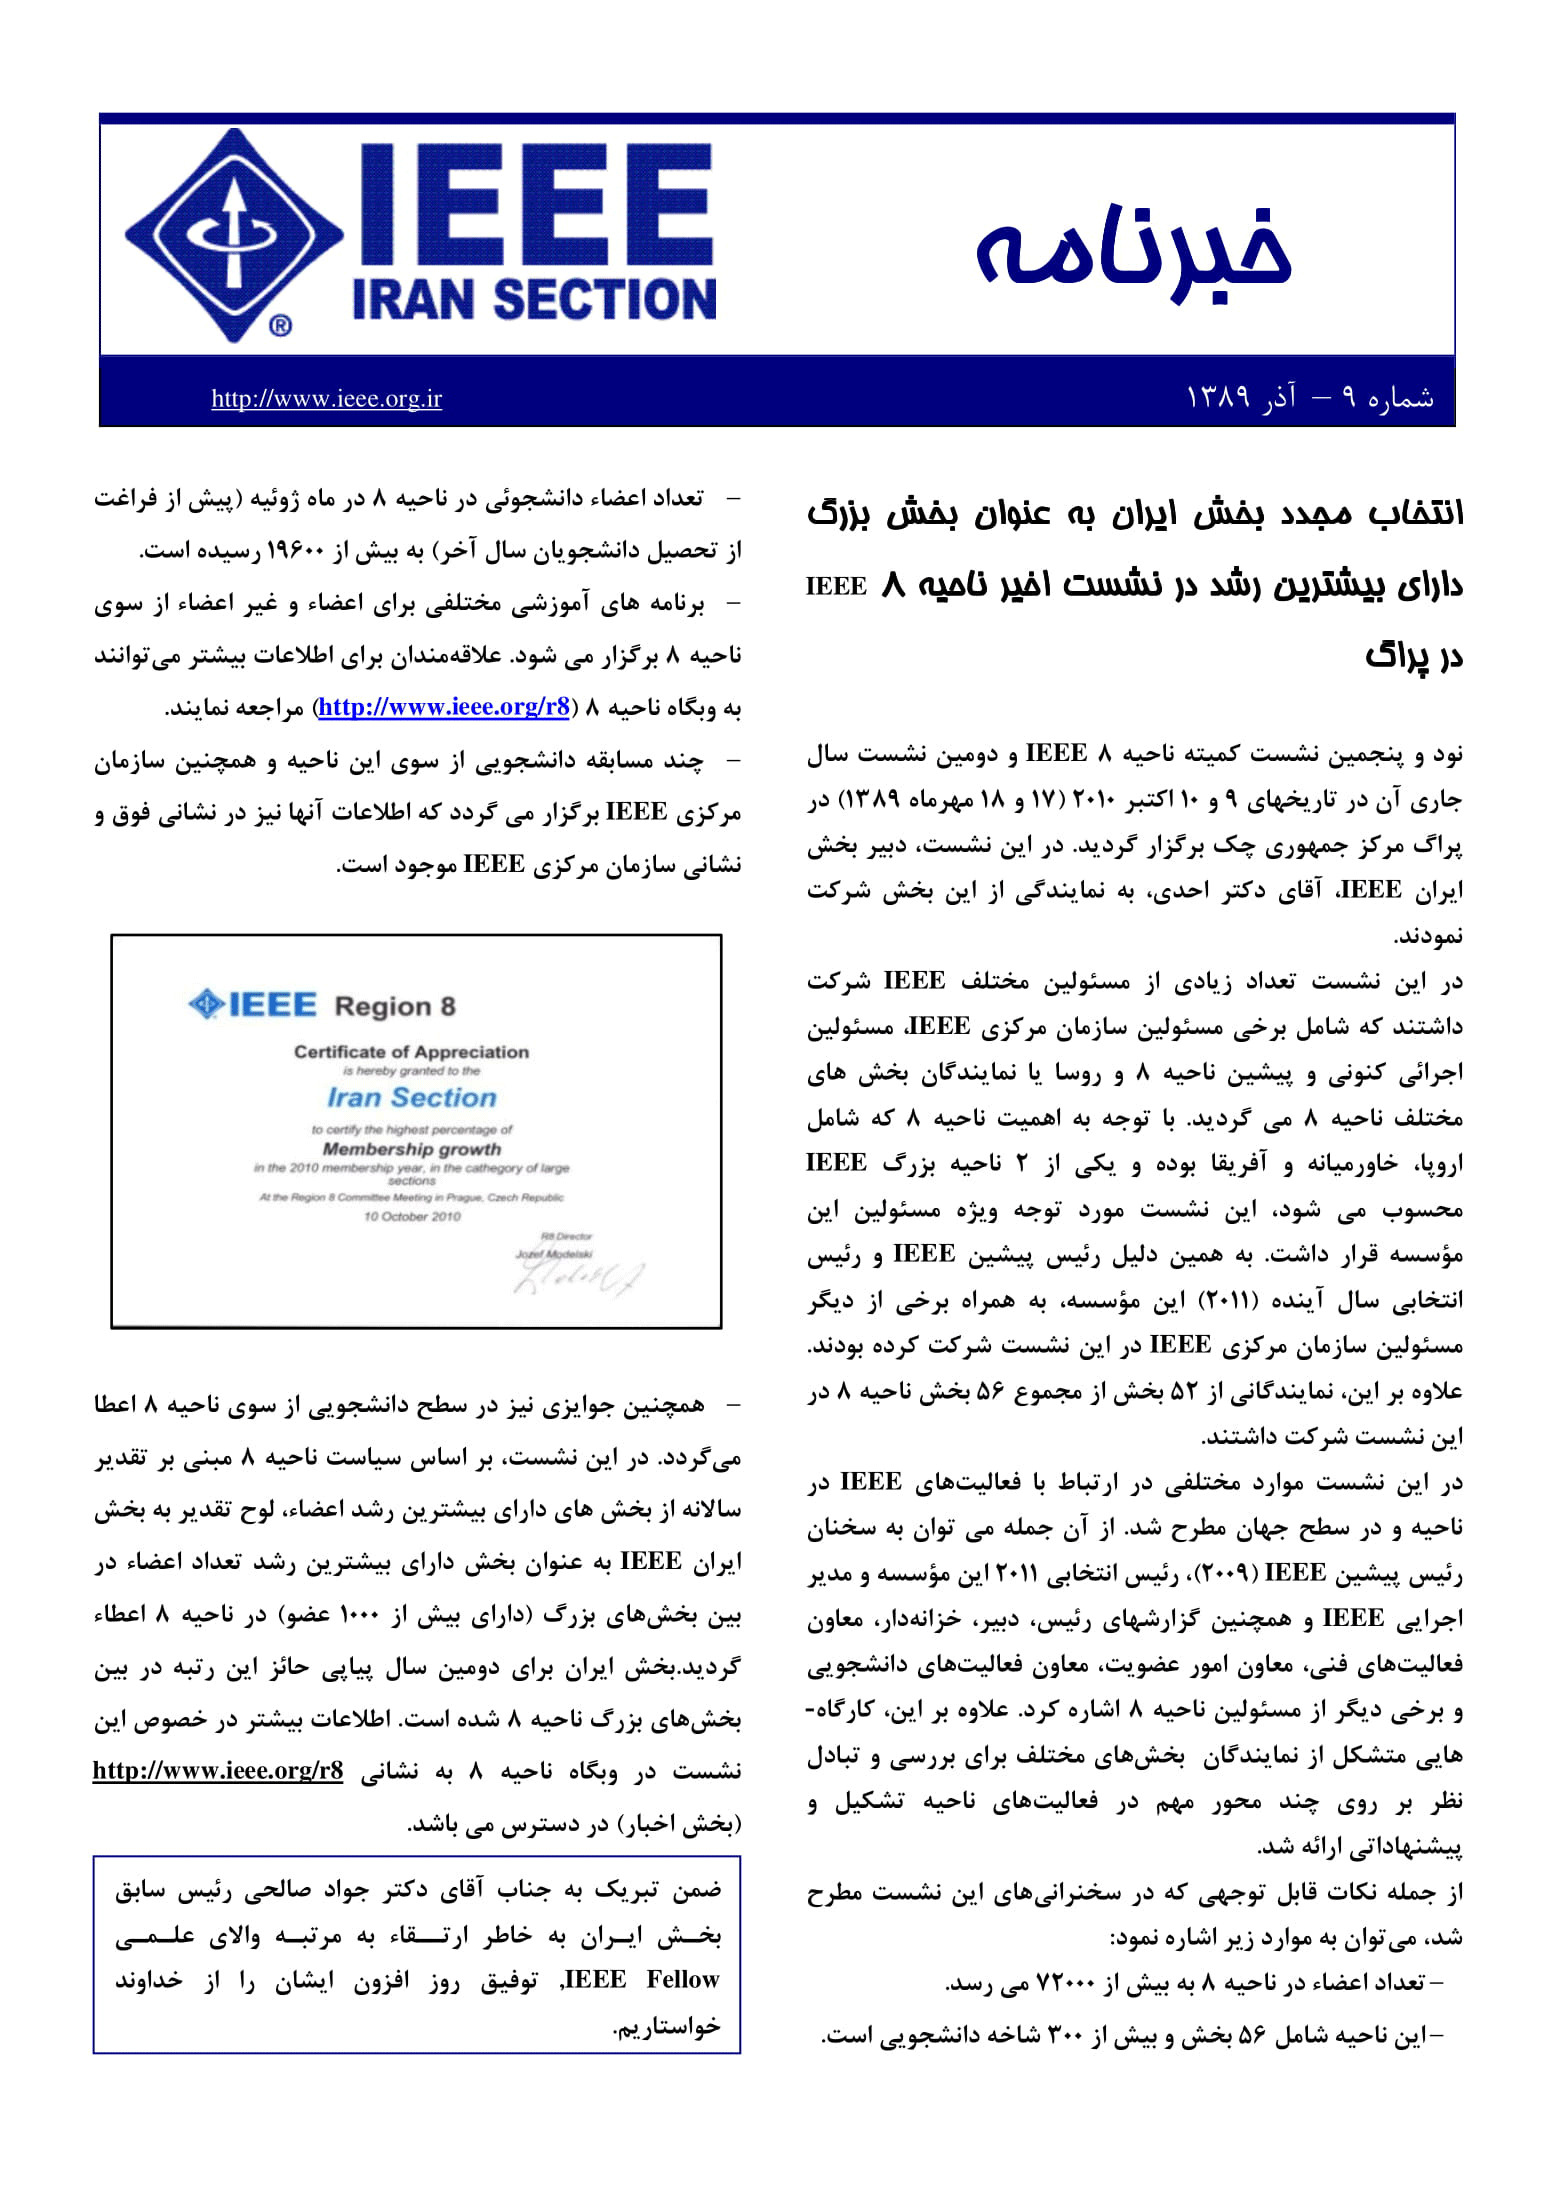 IEEE-Iran-Section_Newsletter_Azar_1389_No.9